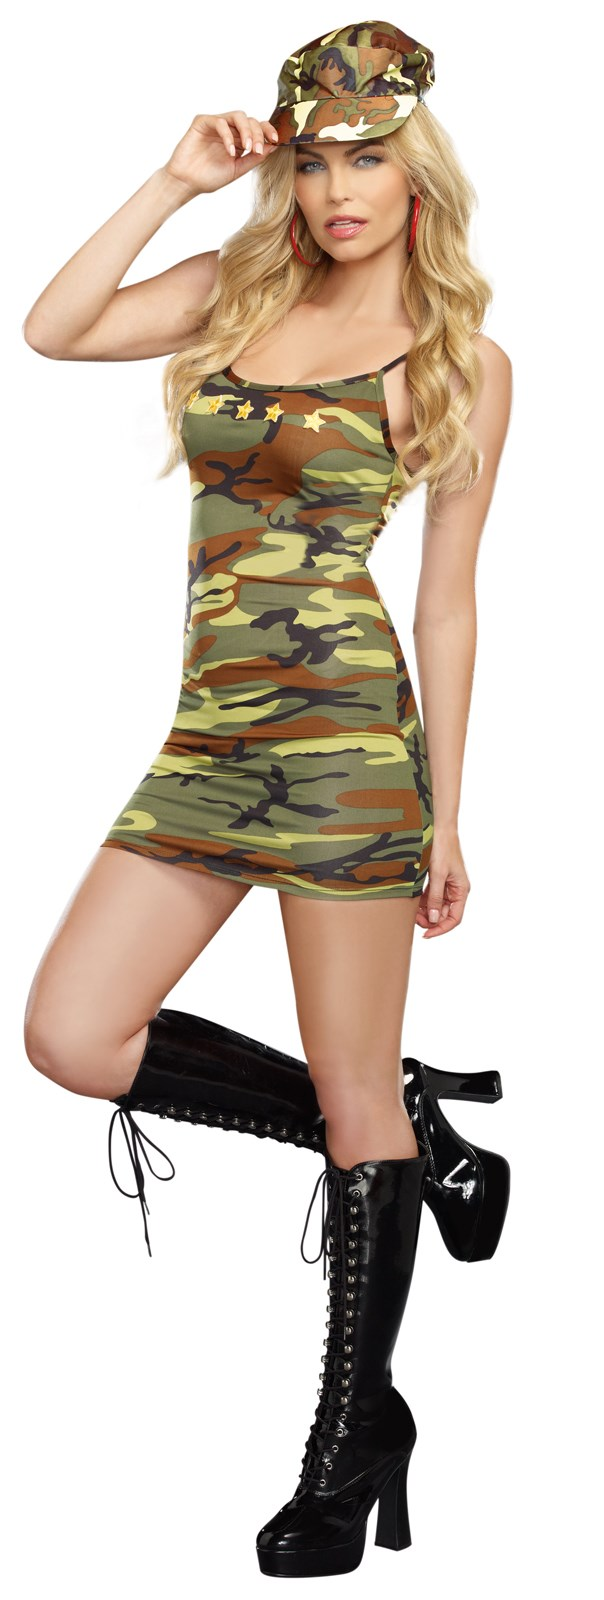 Sexy Camo Dress With Star Appliques